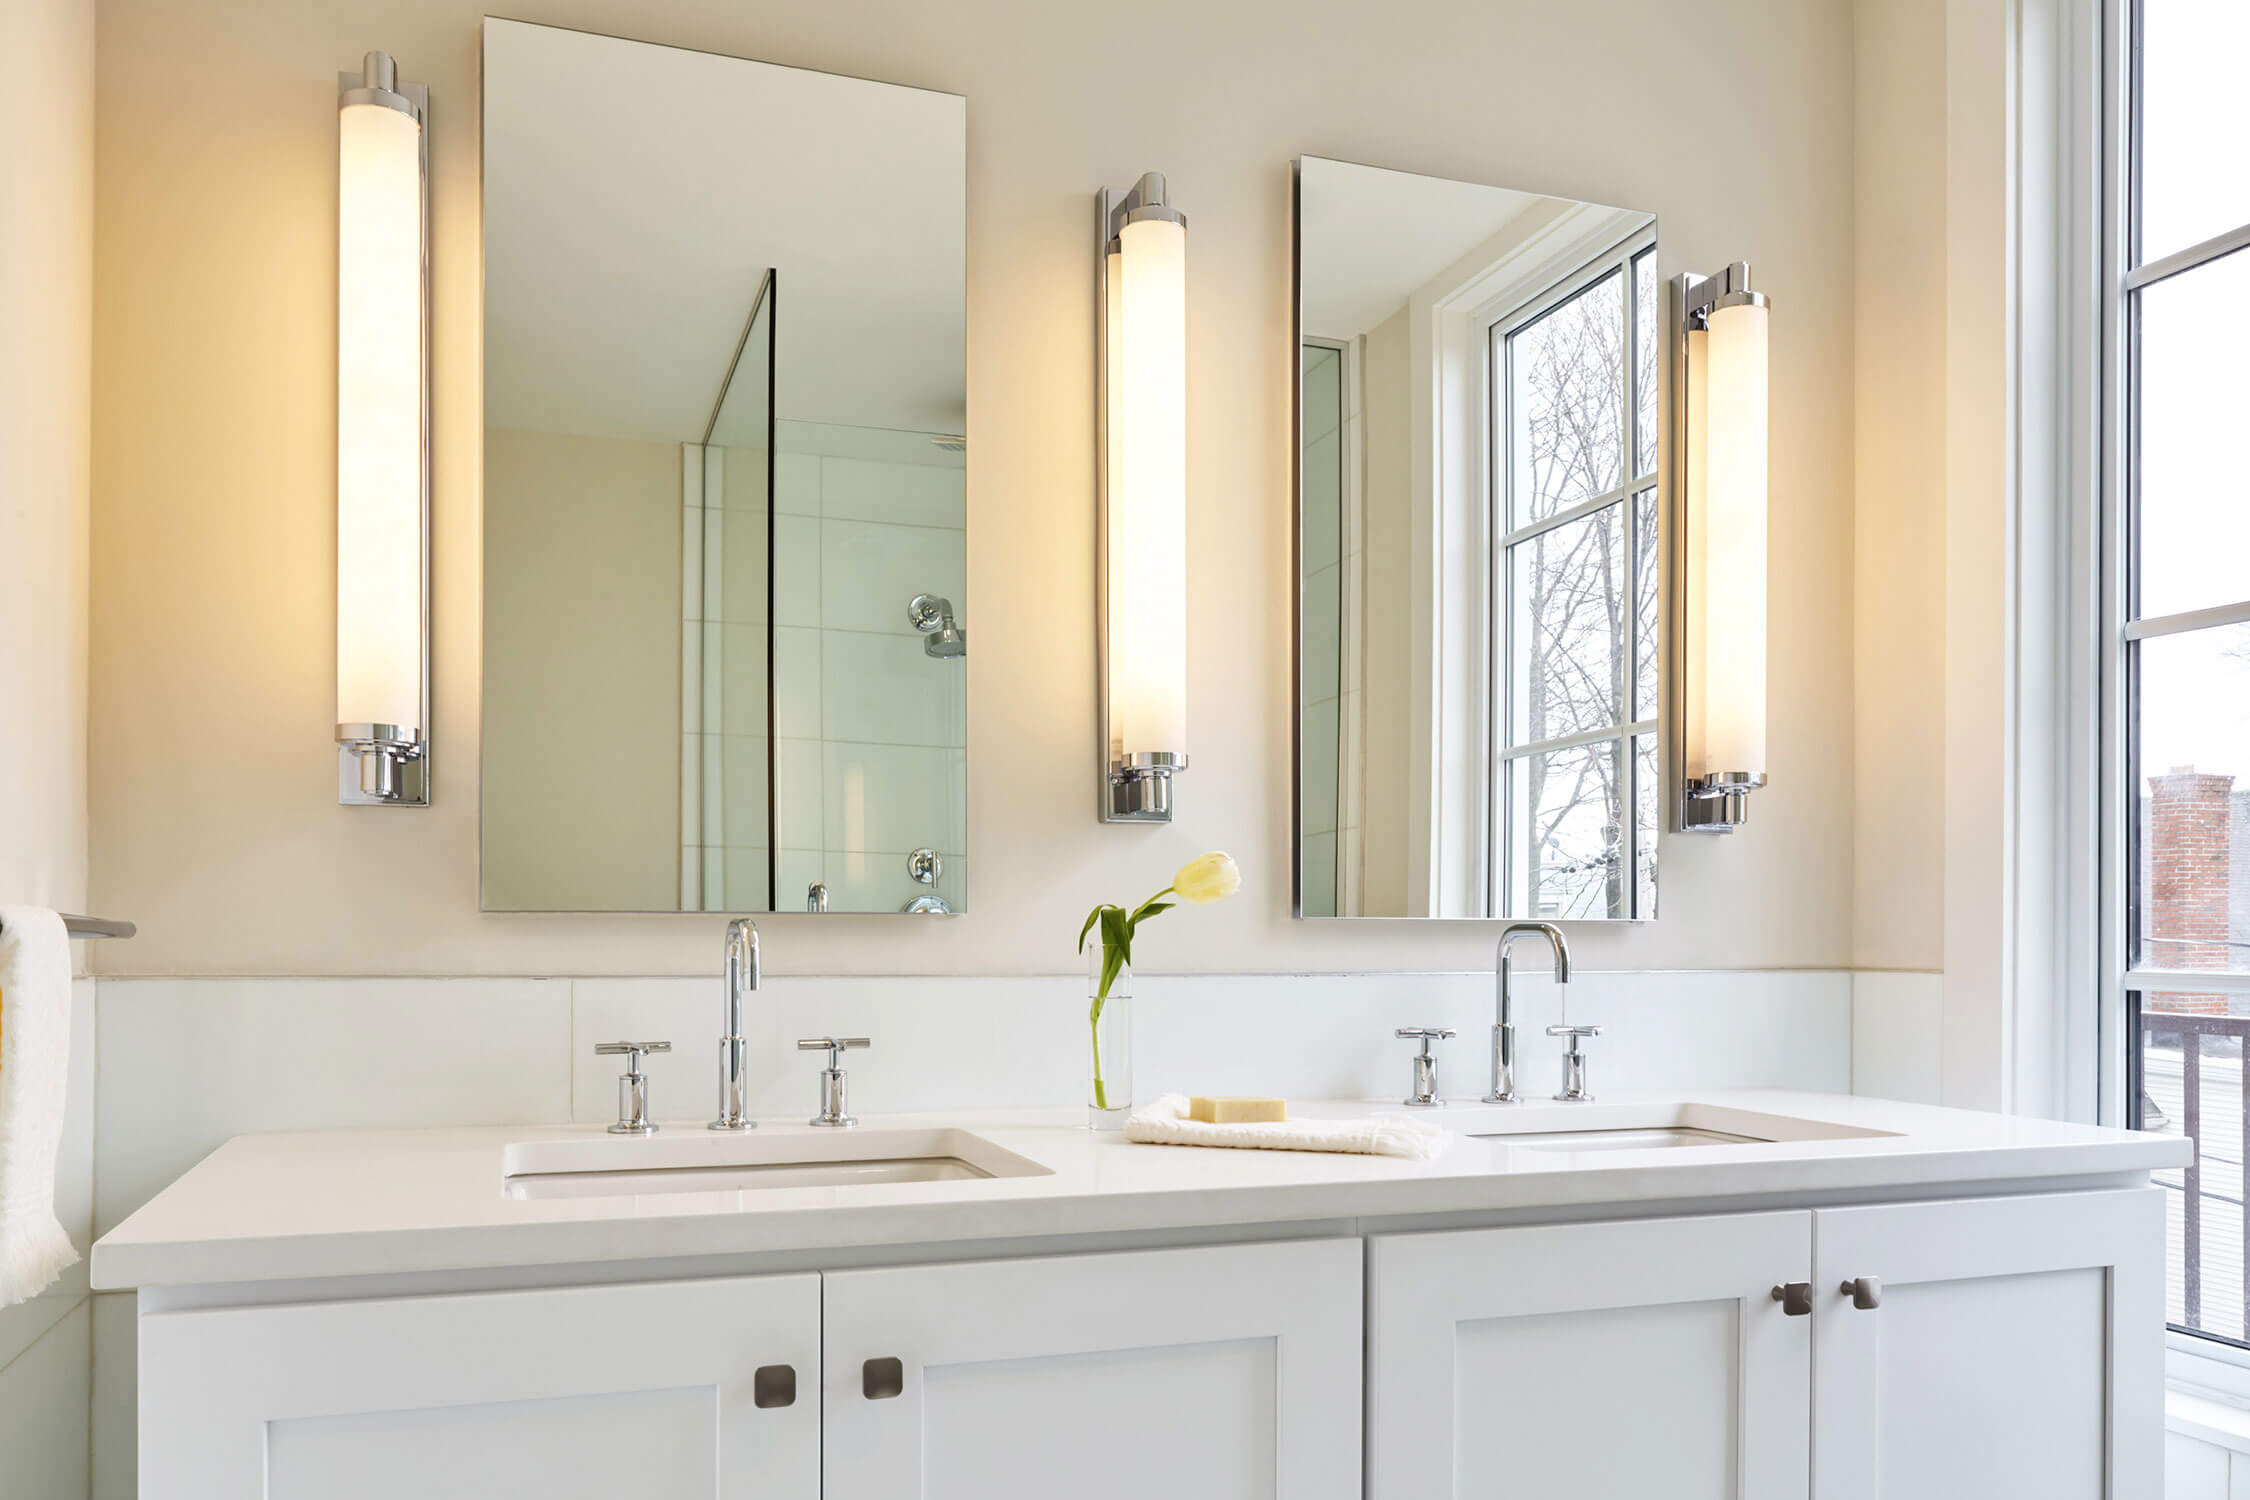 Side-by-side bathroom sinks with mirrors and three cylindrical lights between the mirrors.